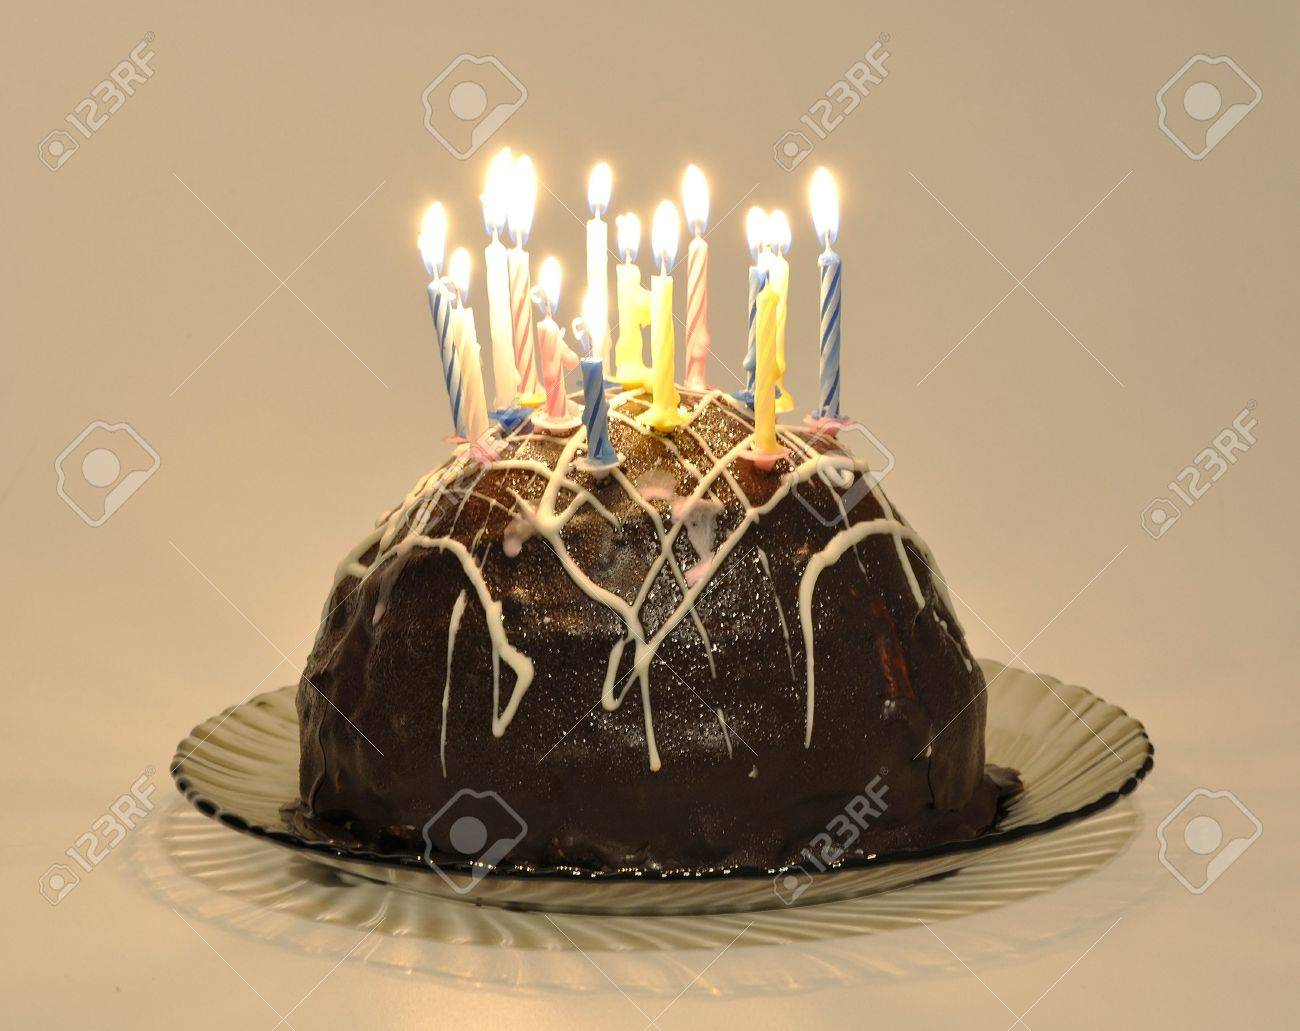 Wondrous Chocolate Cake With Candles On A Cake Plate On A White Background Birthday Cards Printable Trancafe Filternl